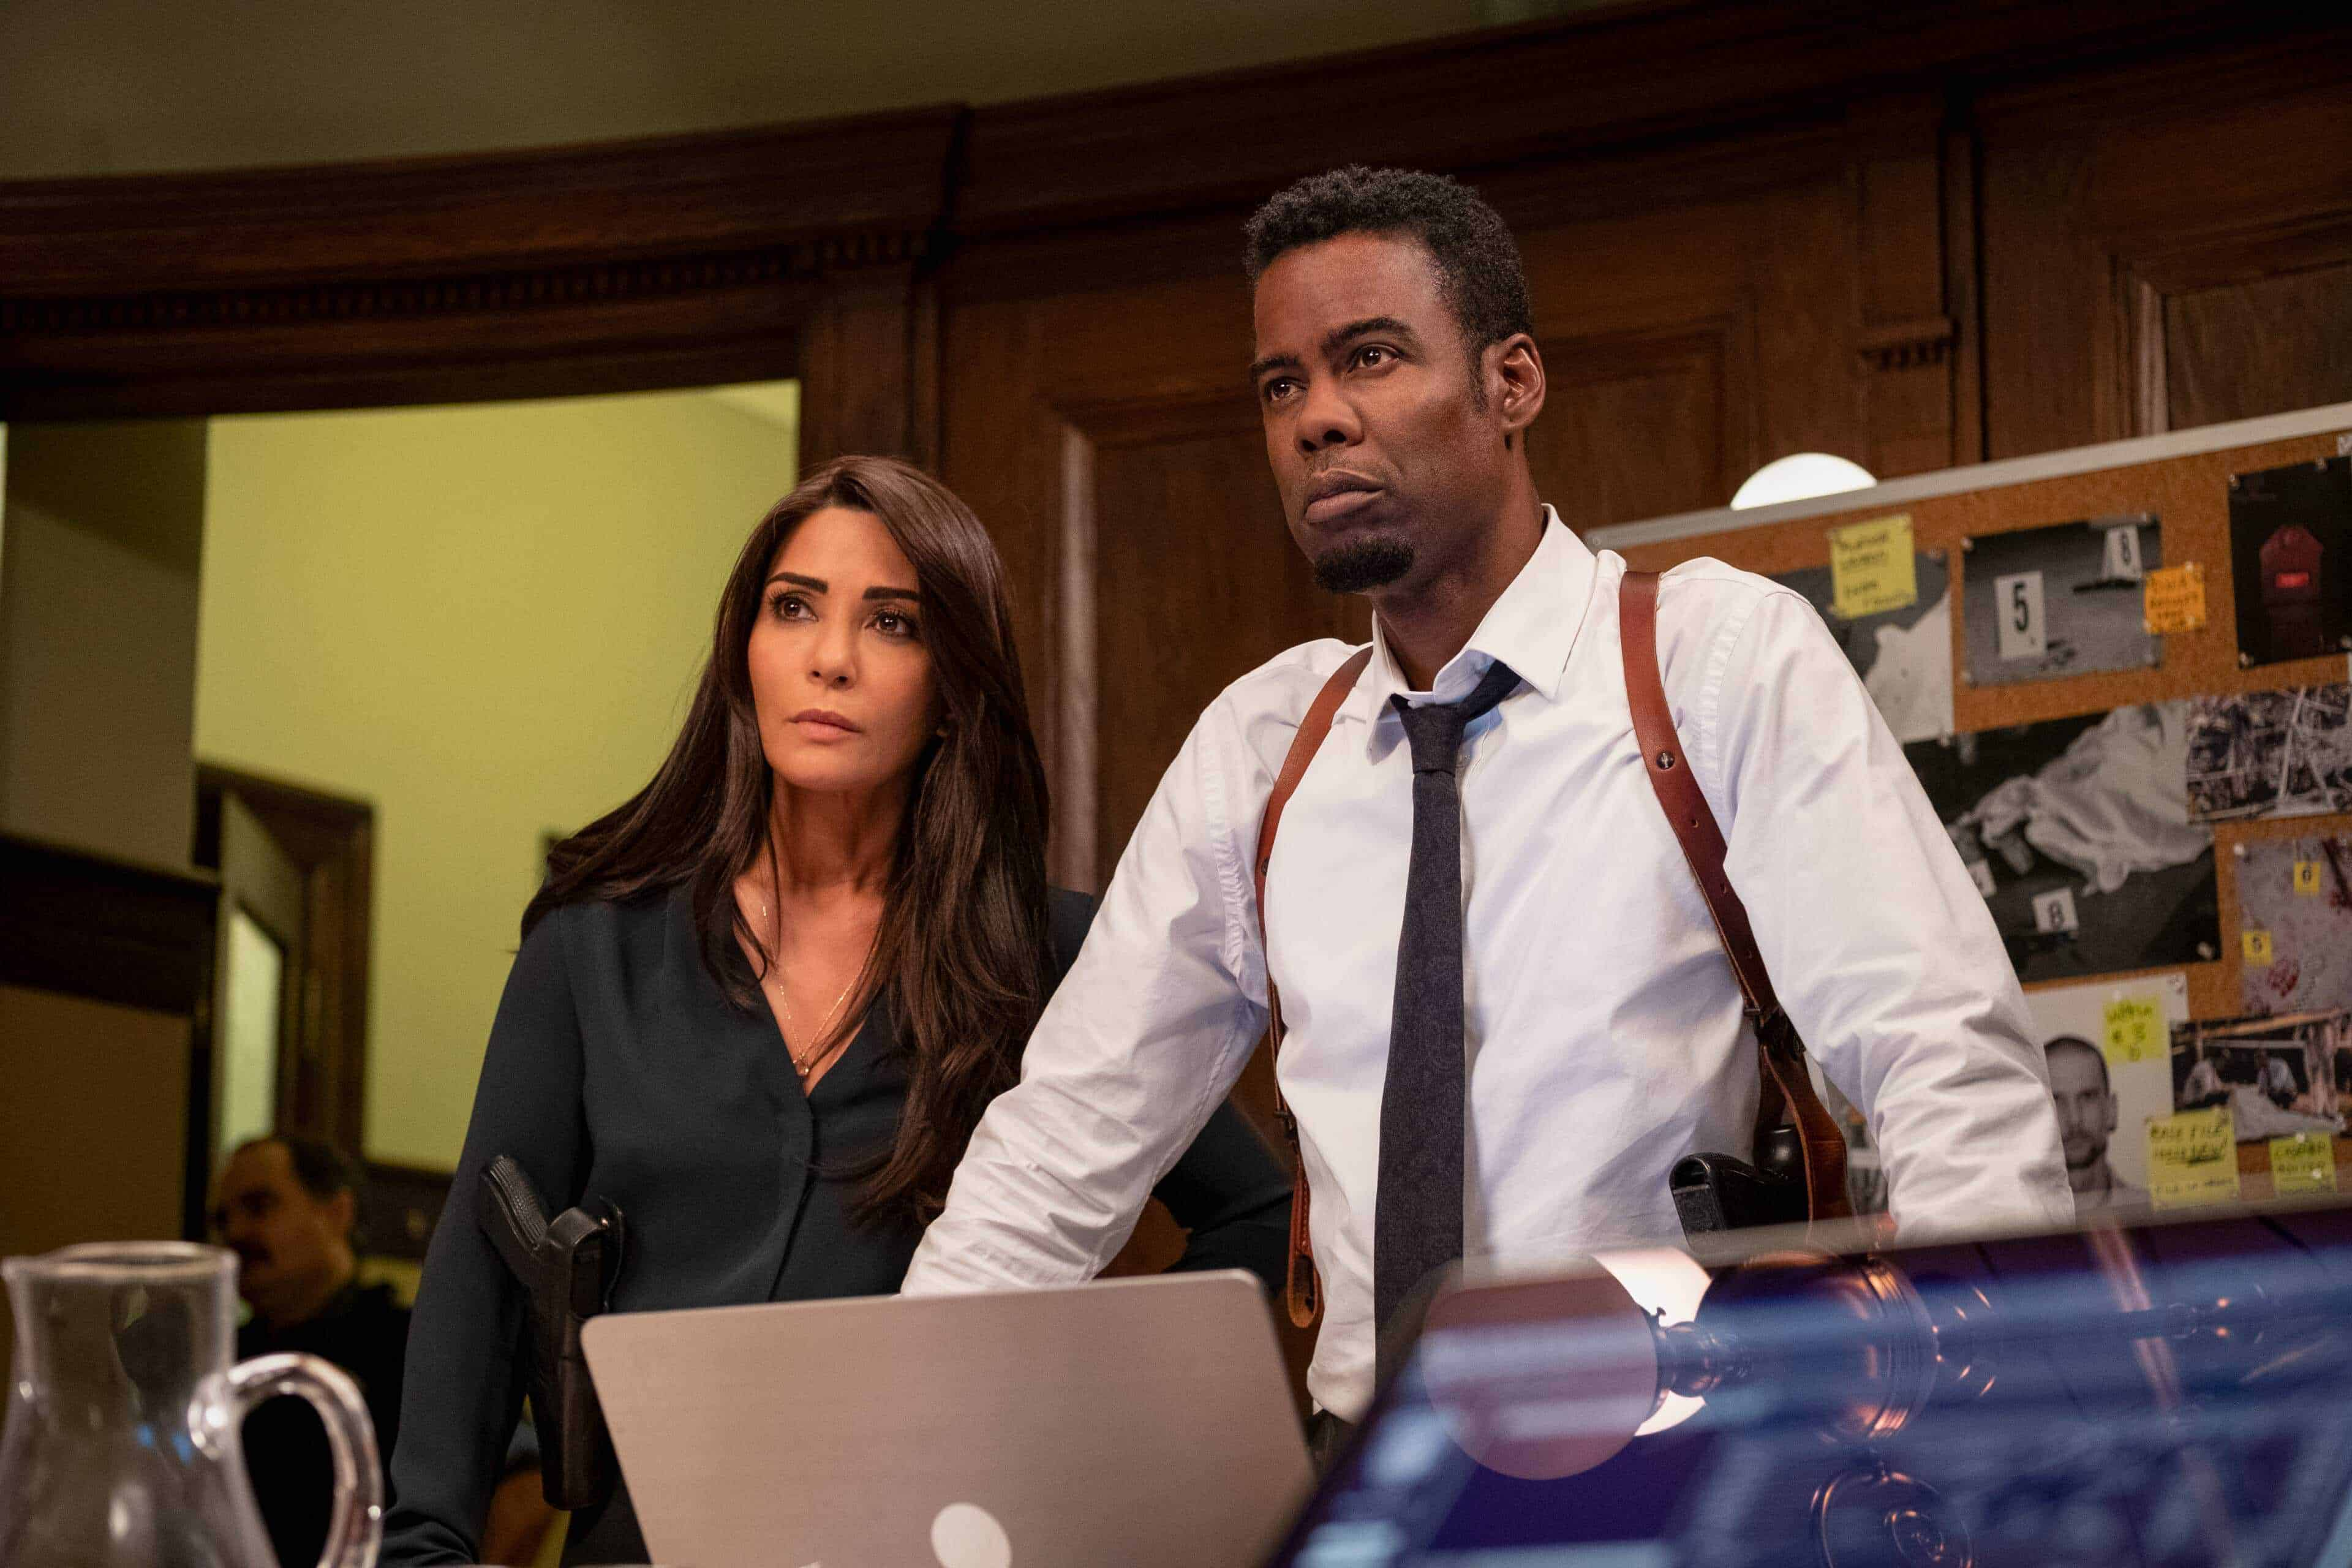 Angie (Marisol Nichols) and Zeke (Chris Rock) looking at the evidence